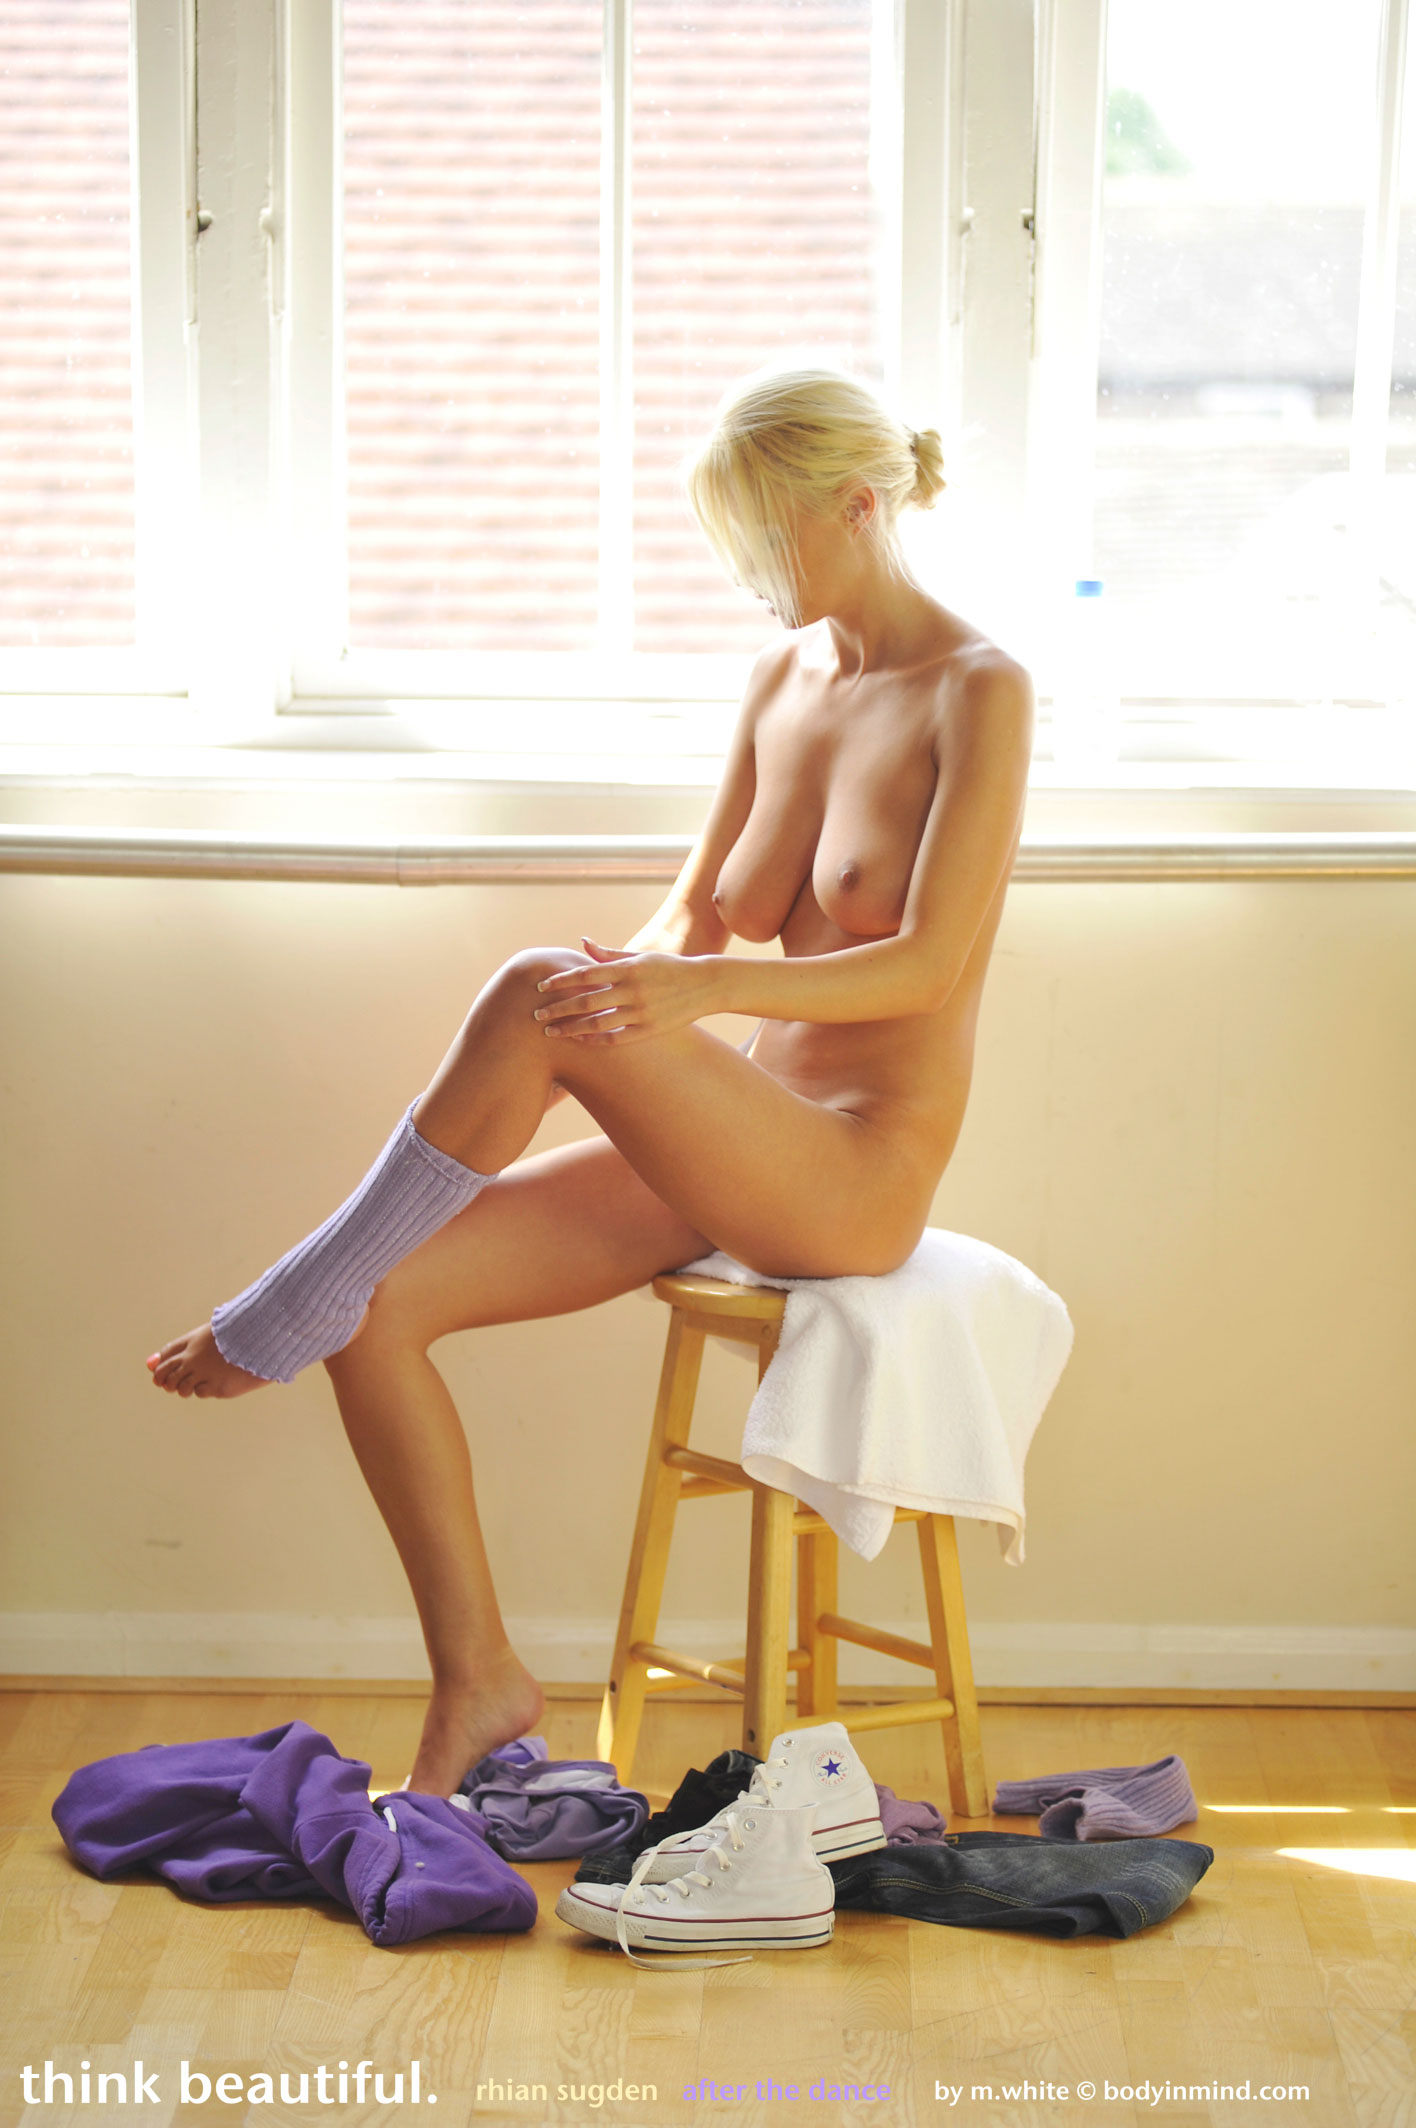 rhian-sugden-leg-warmers-bodyinmind-10